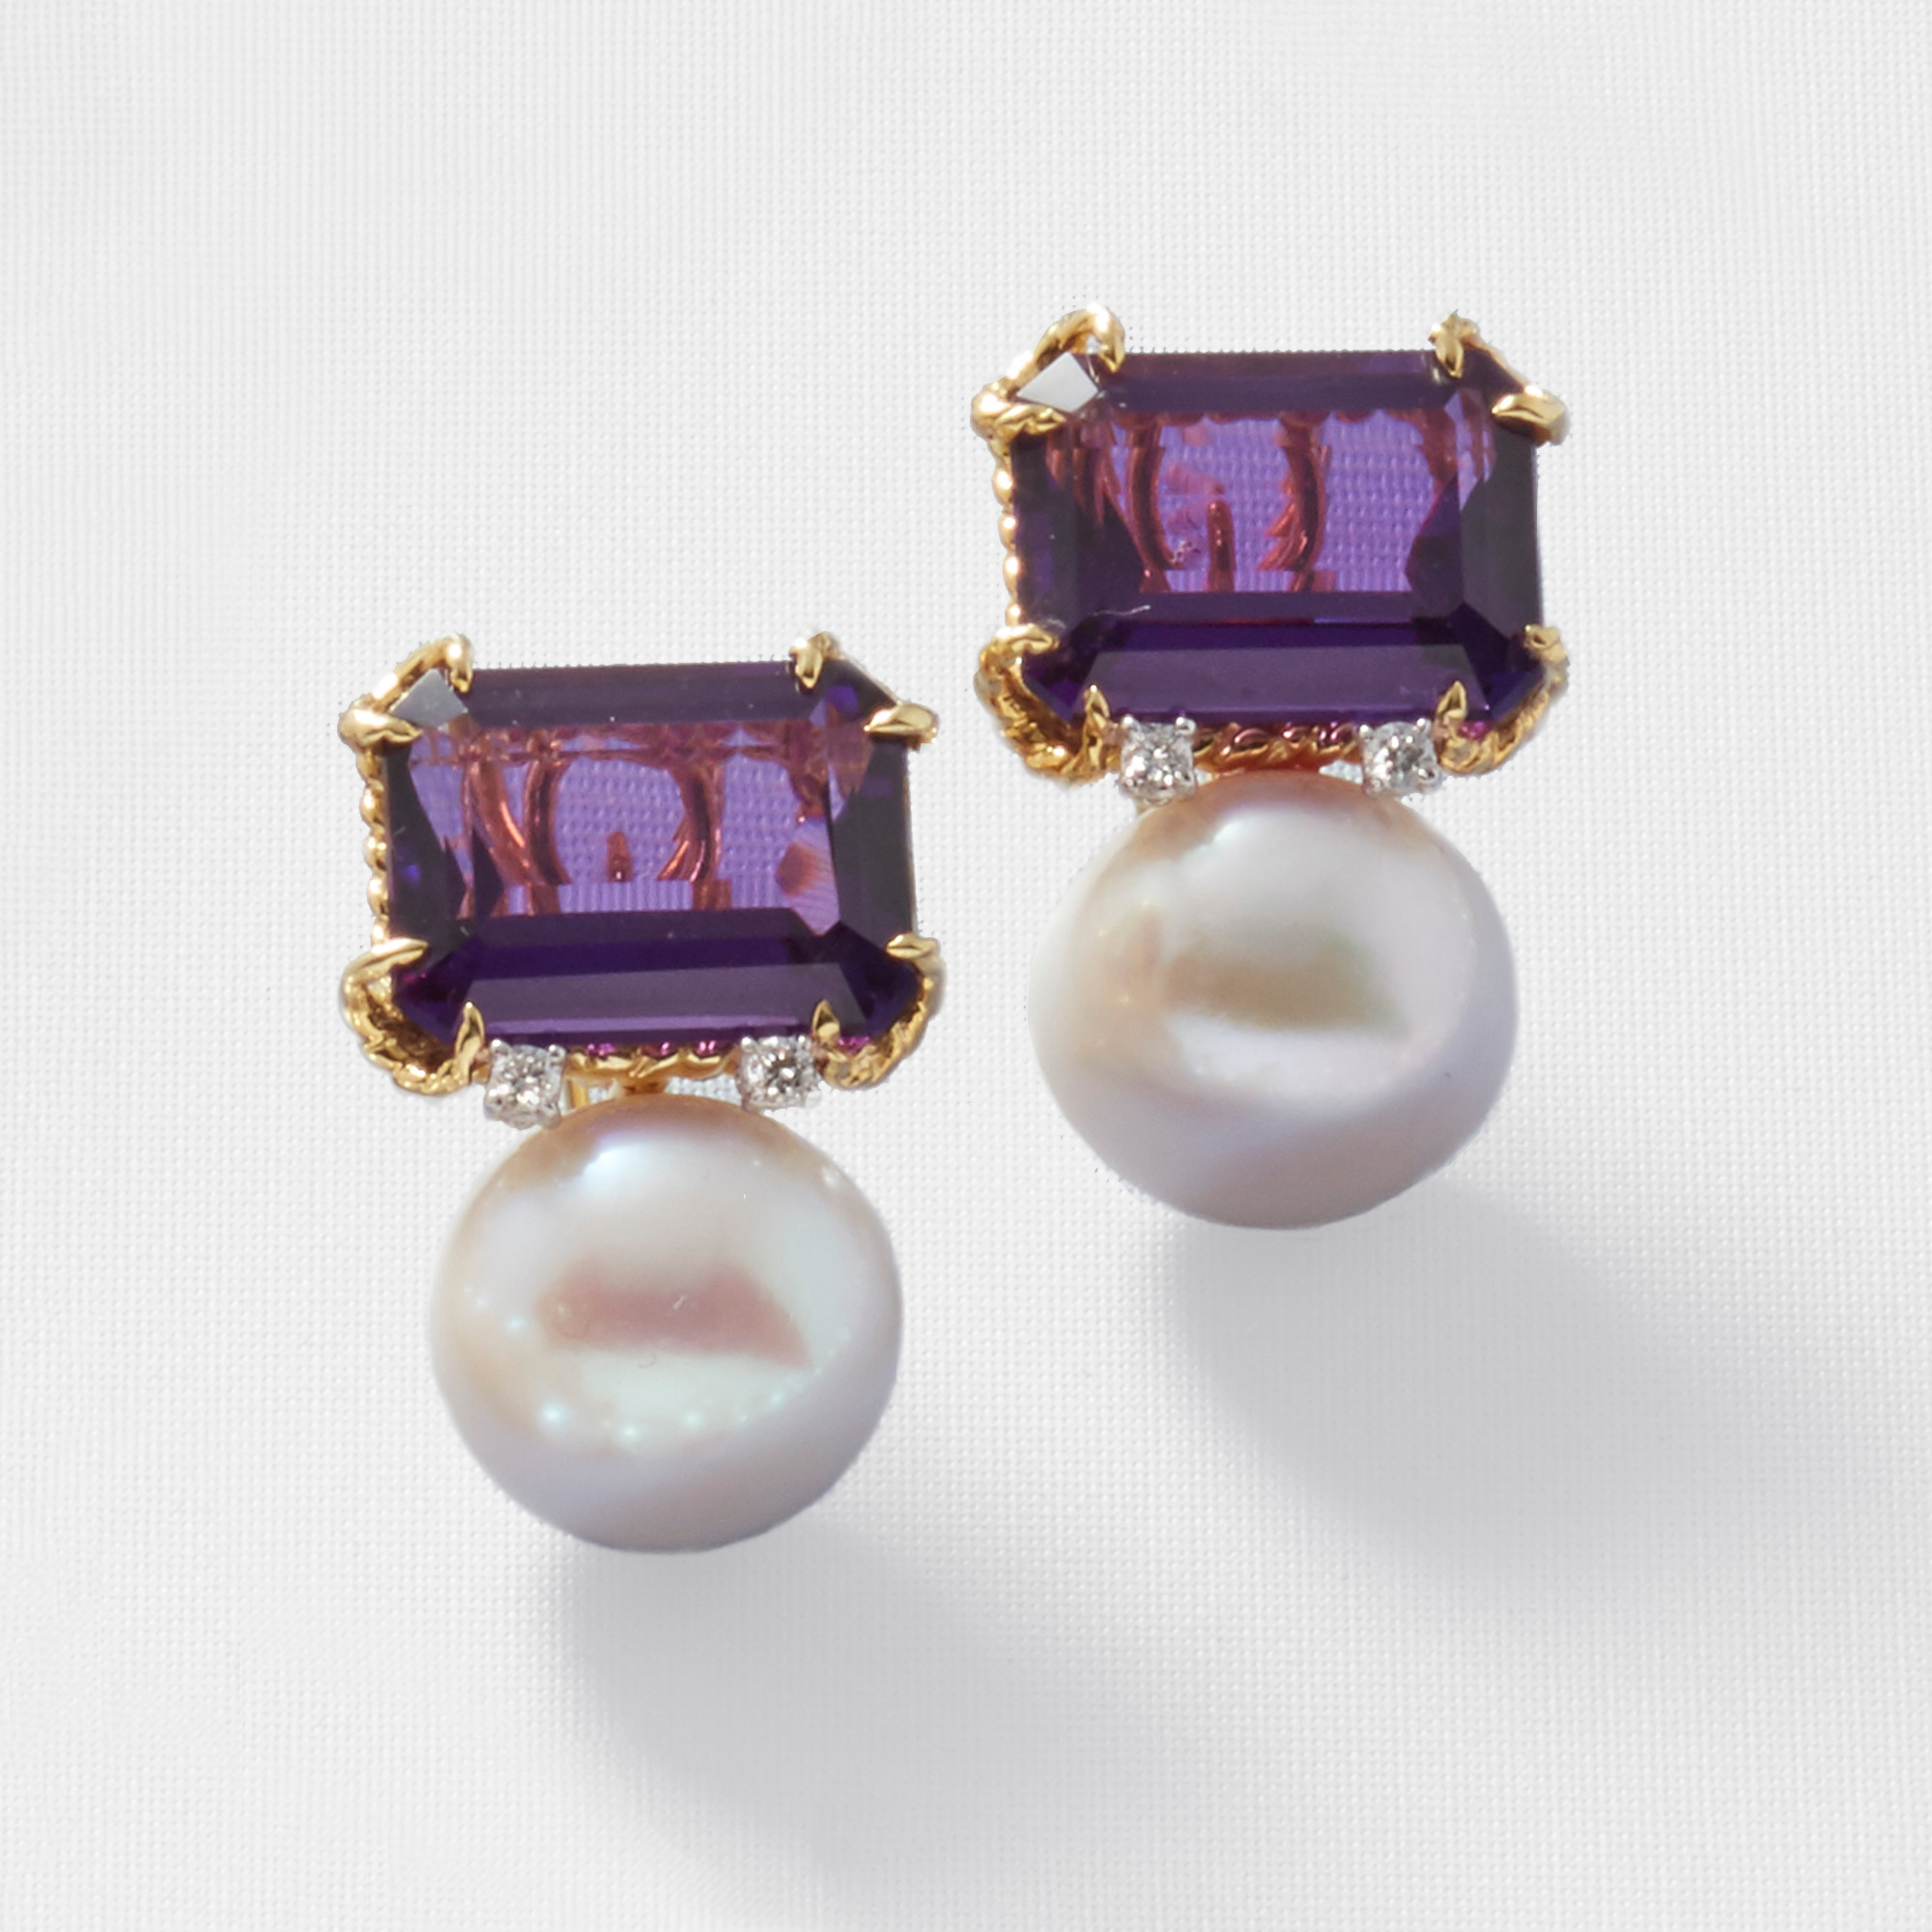 Amethyst & Pearl Duo Twist Duo Earrings